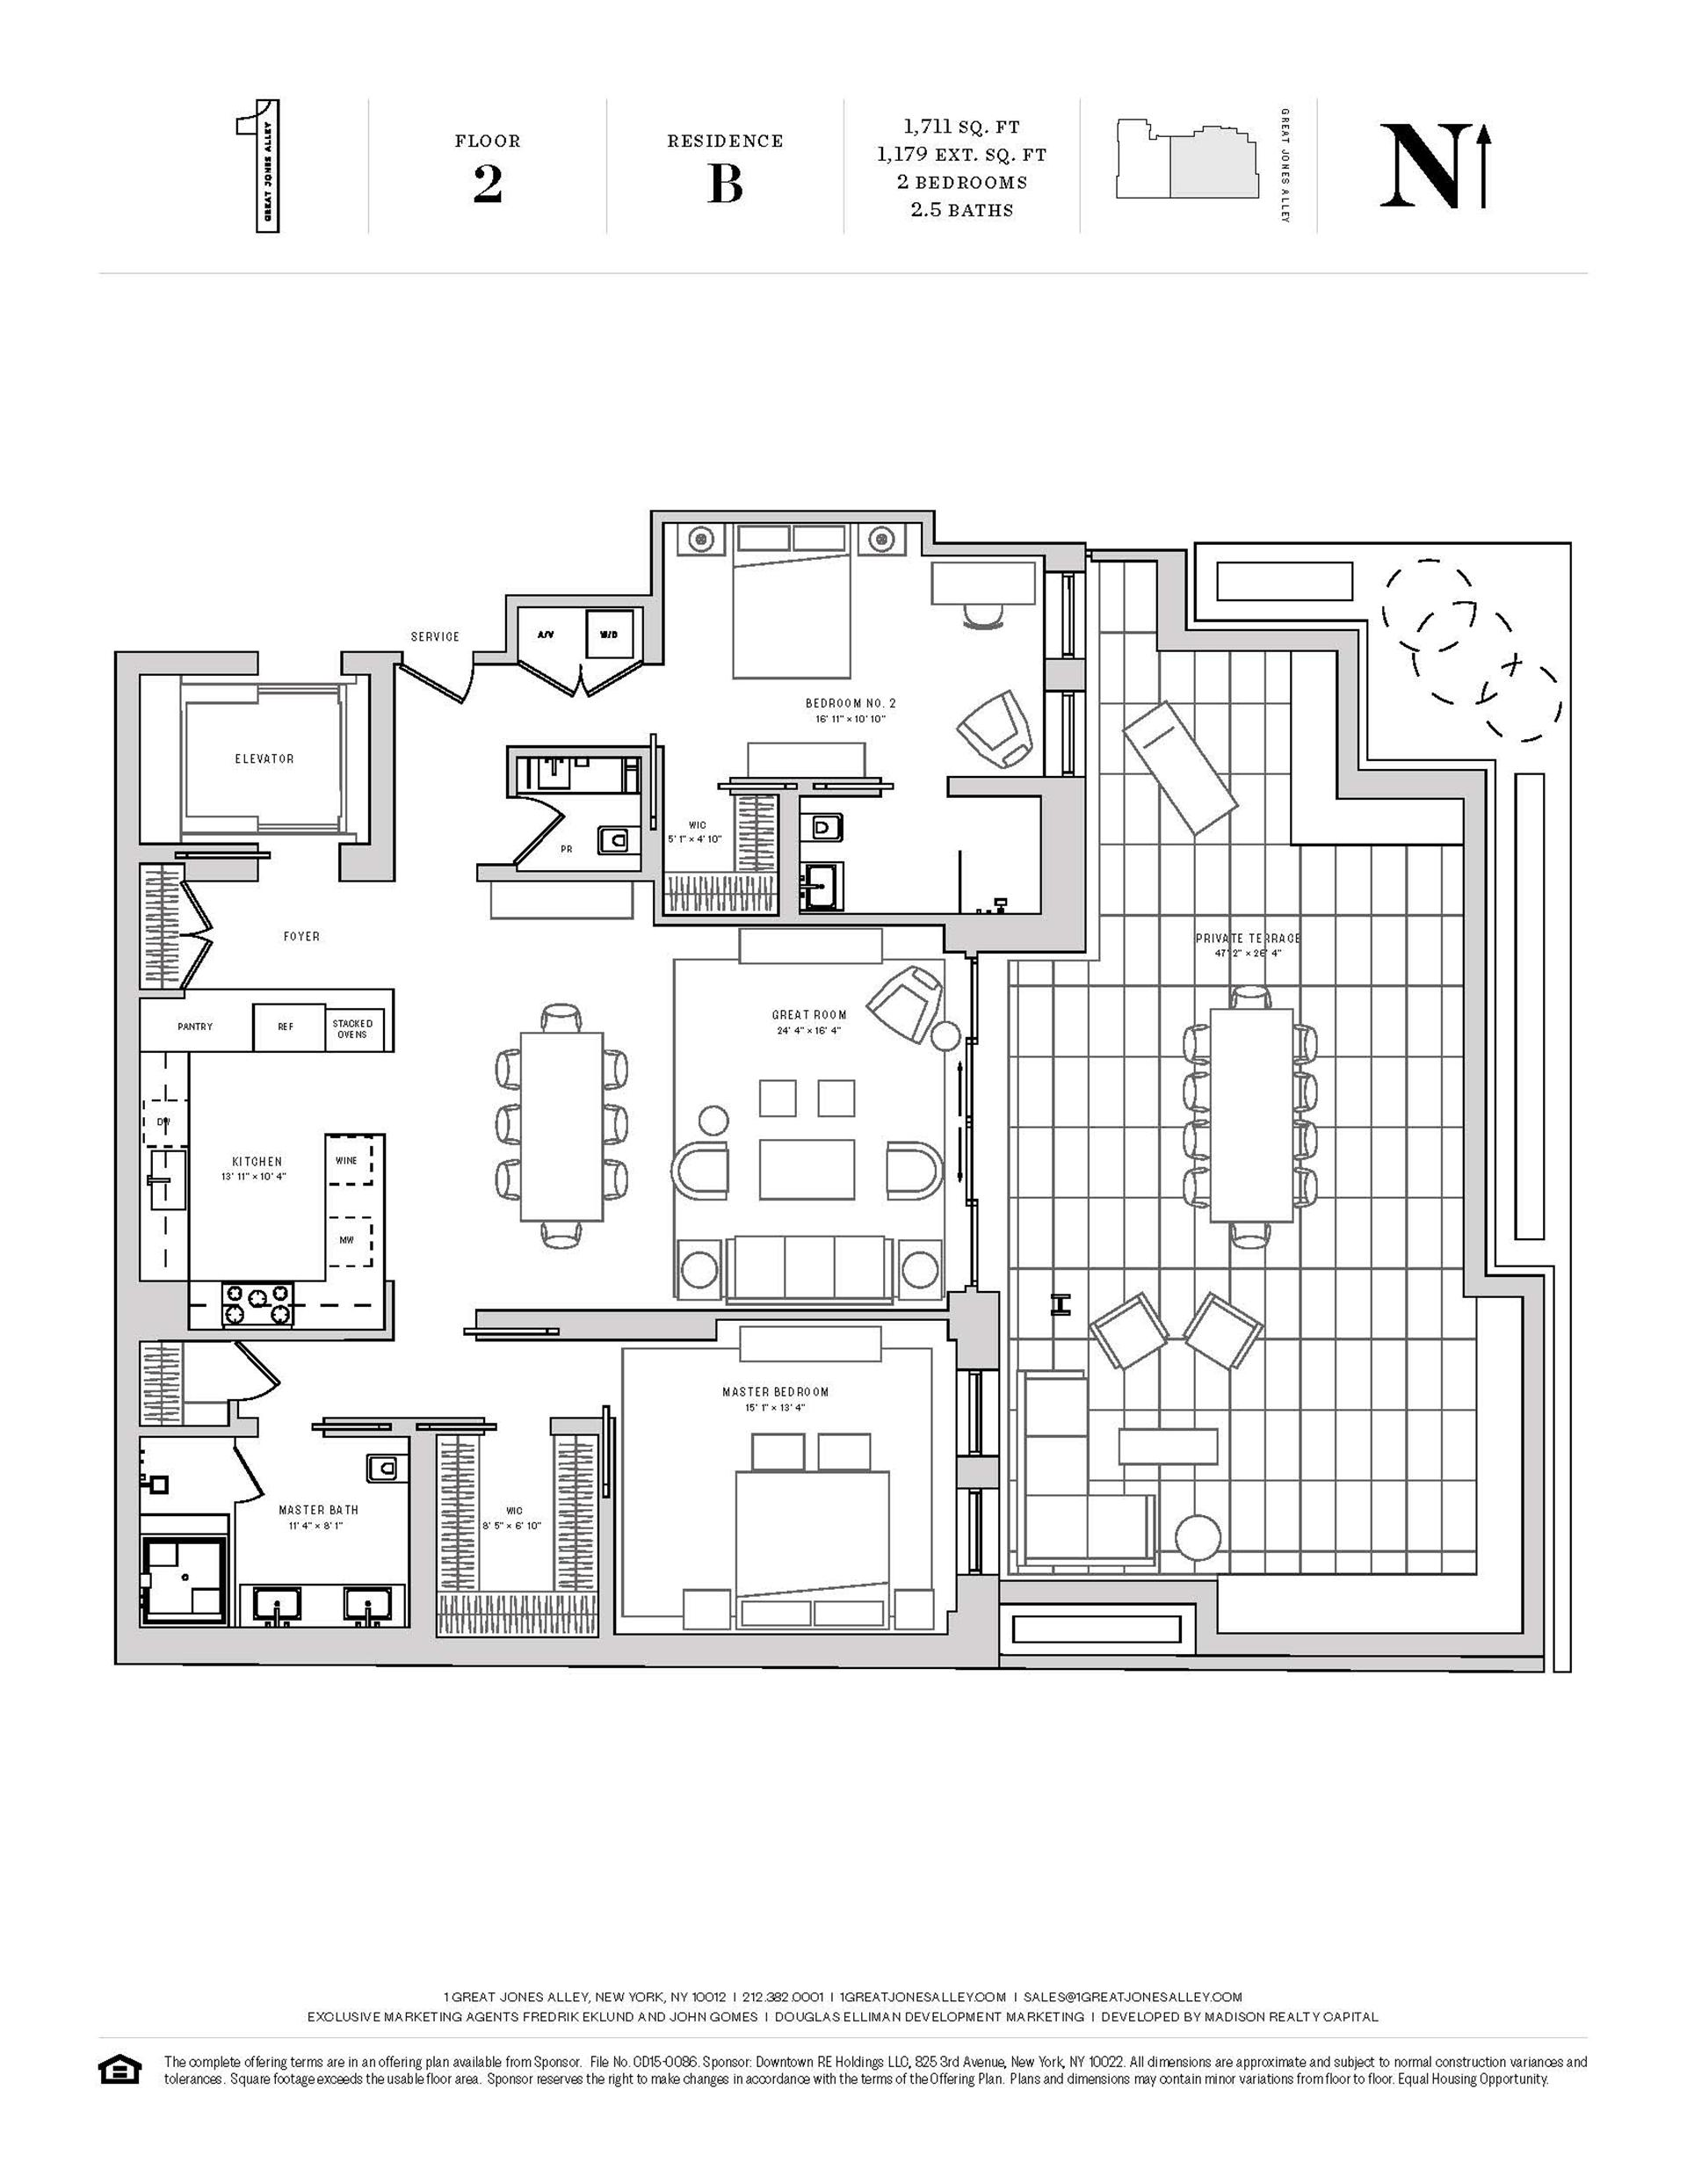 Floor plan of 1 Great Jones Alley, 2B - NoHo, New York